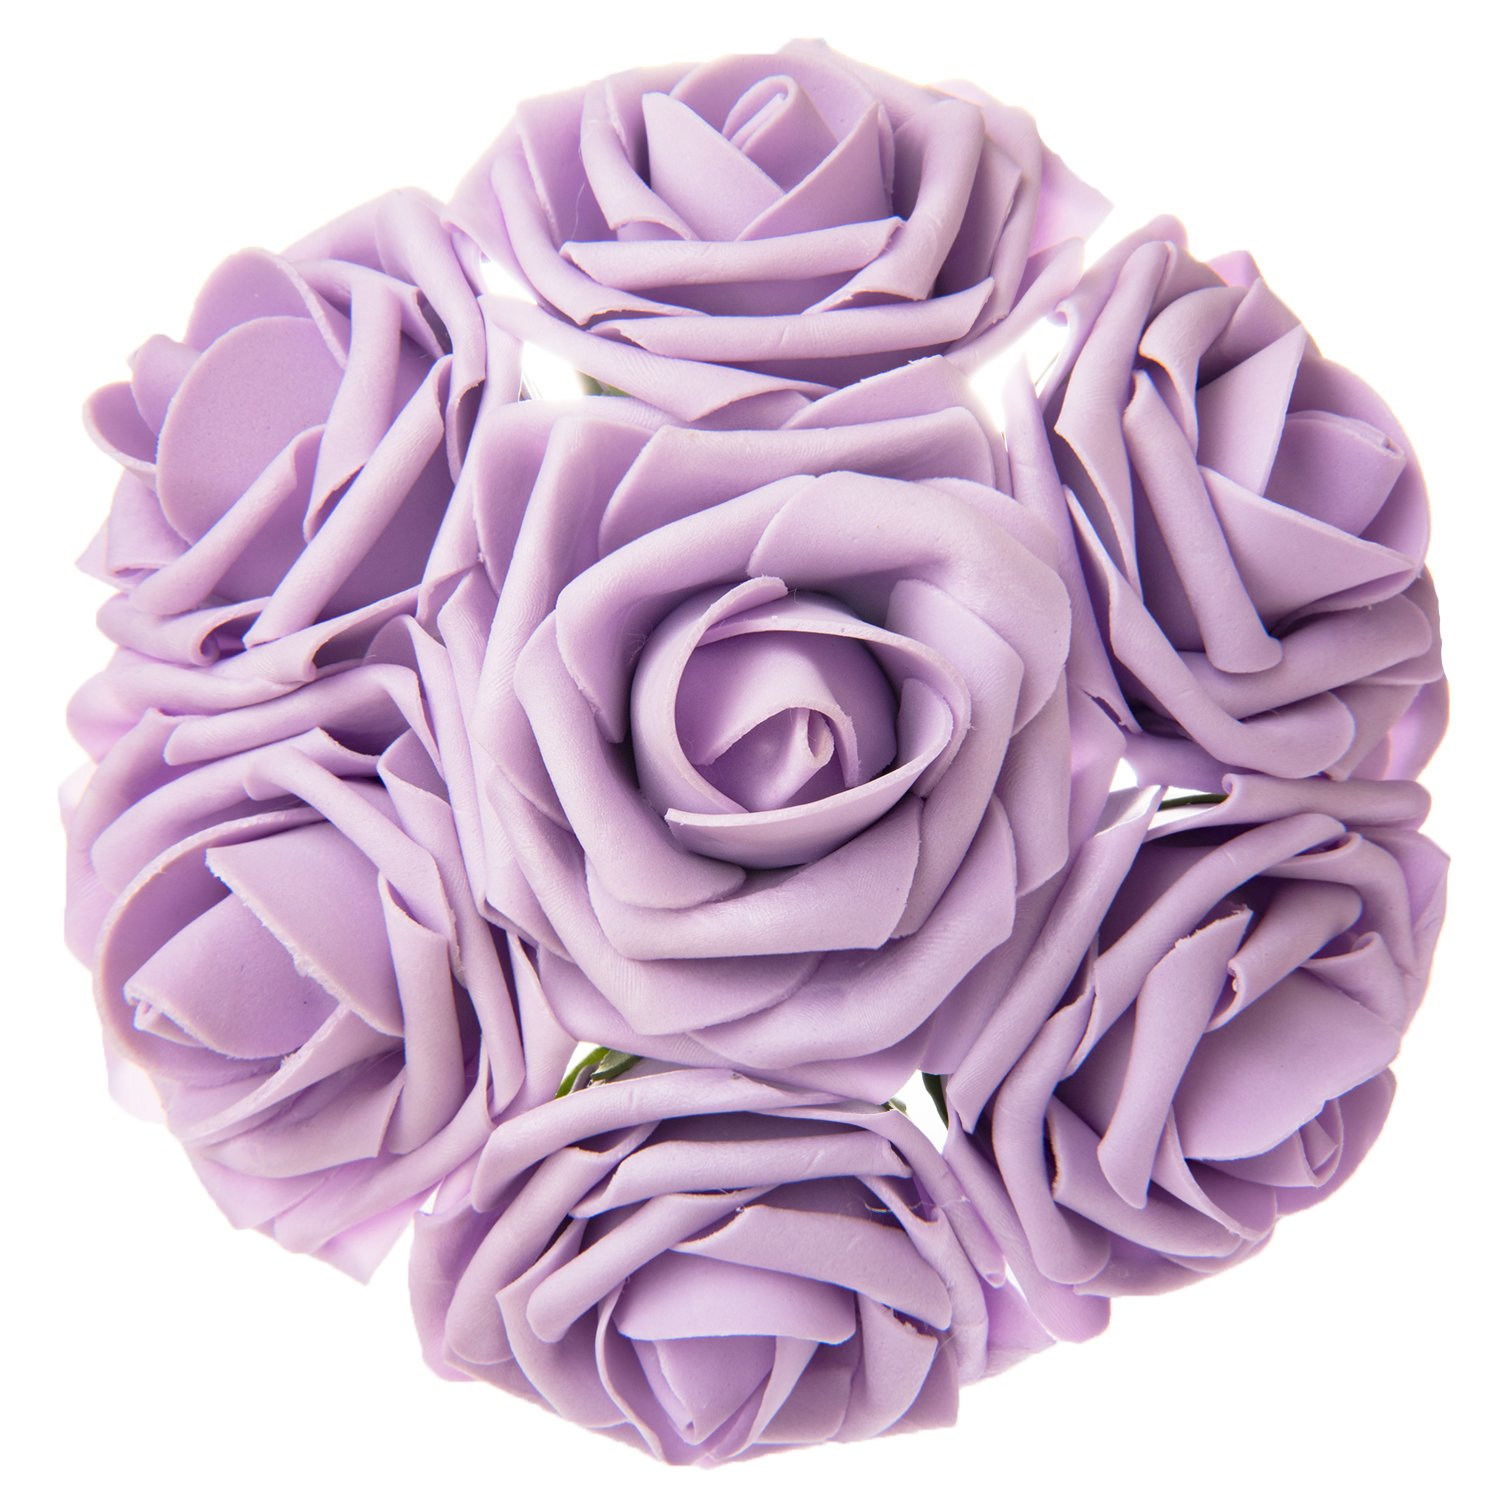 Best rated in artificial flowers helpful customer reviews amazon lings moment artificial flowers lilacpale purple roses 50pcs real looking fake roses w mightylinksfo Image collections